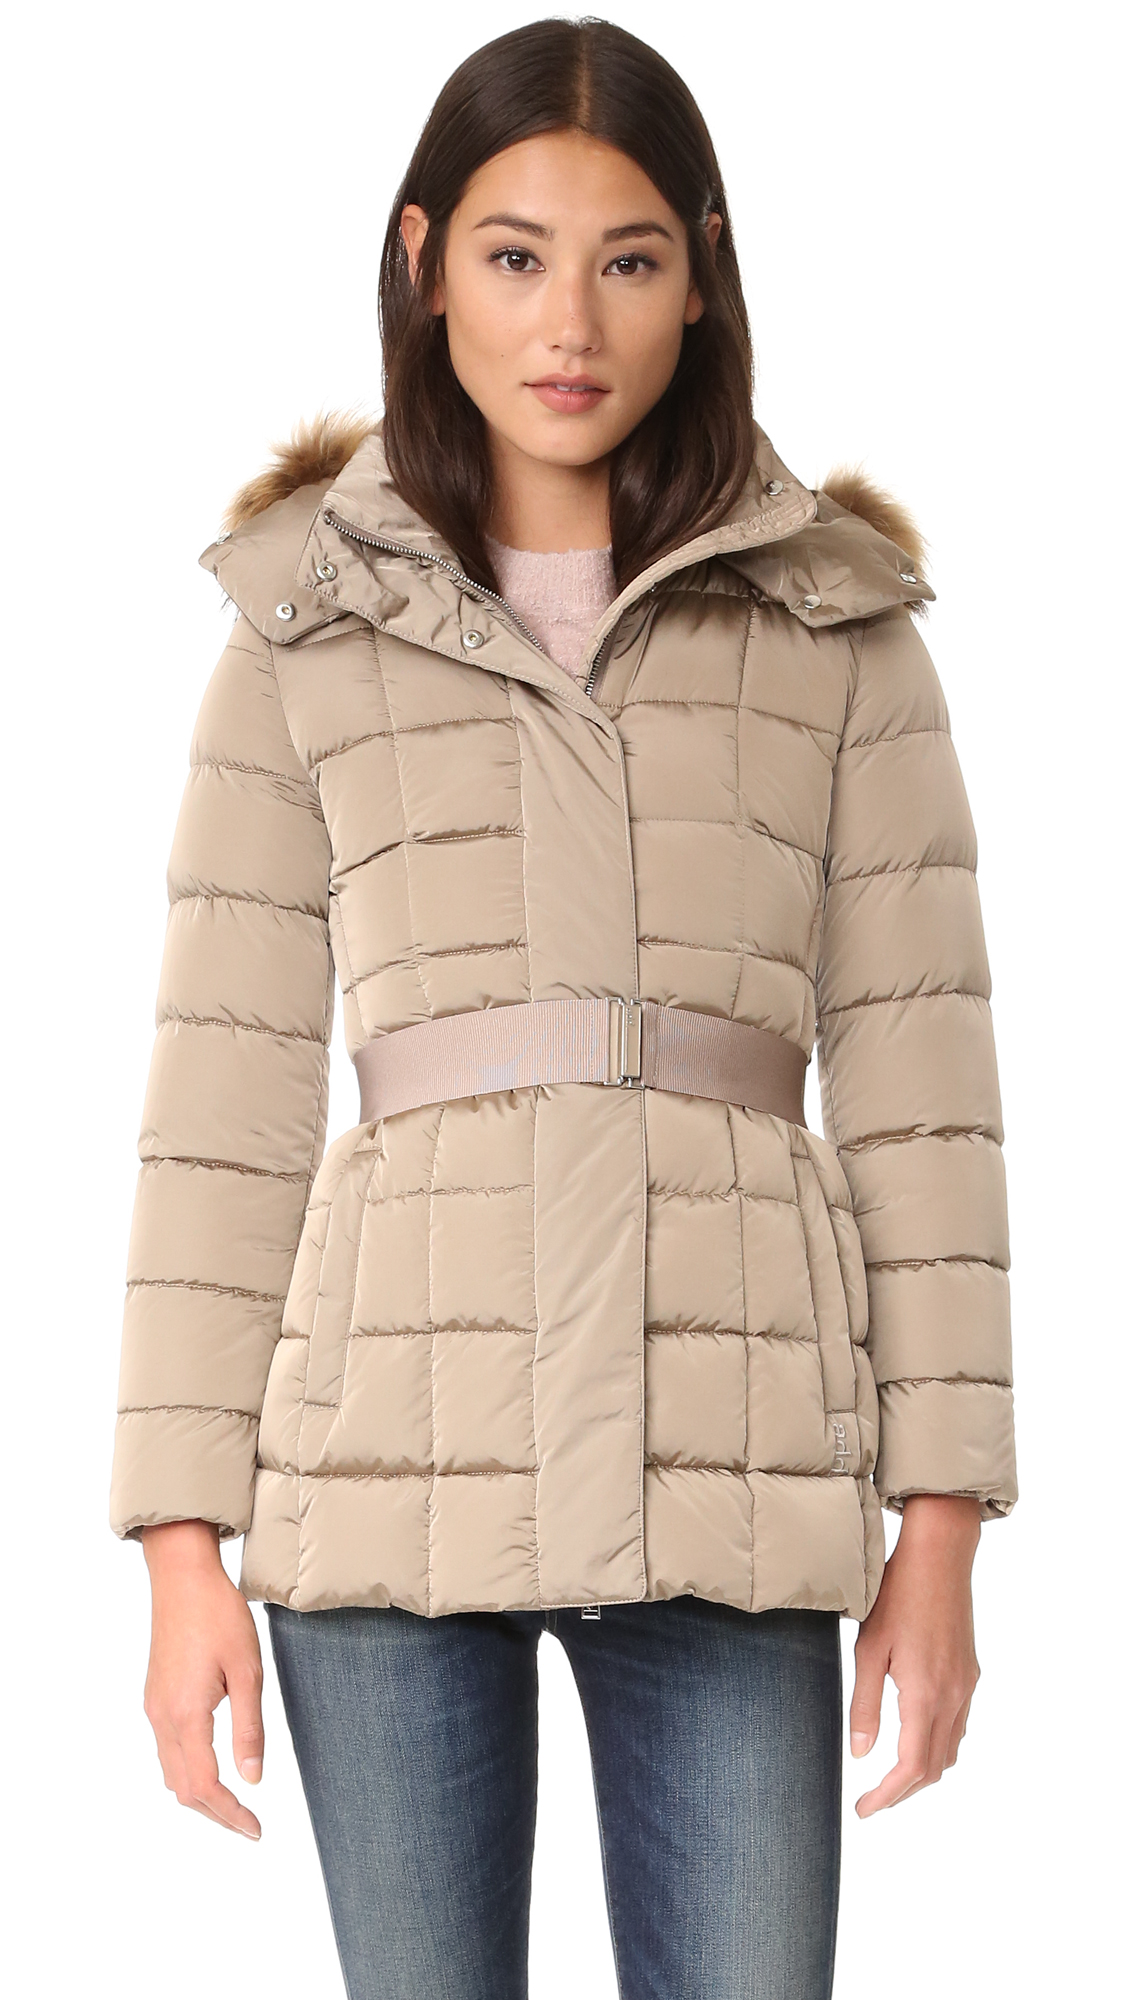 Add Down Down Jacket With Fur - Moka at Shopbop